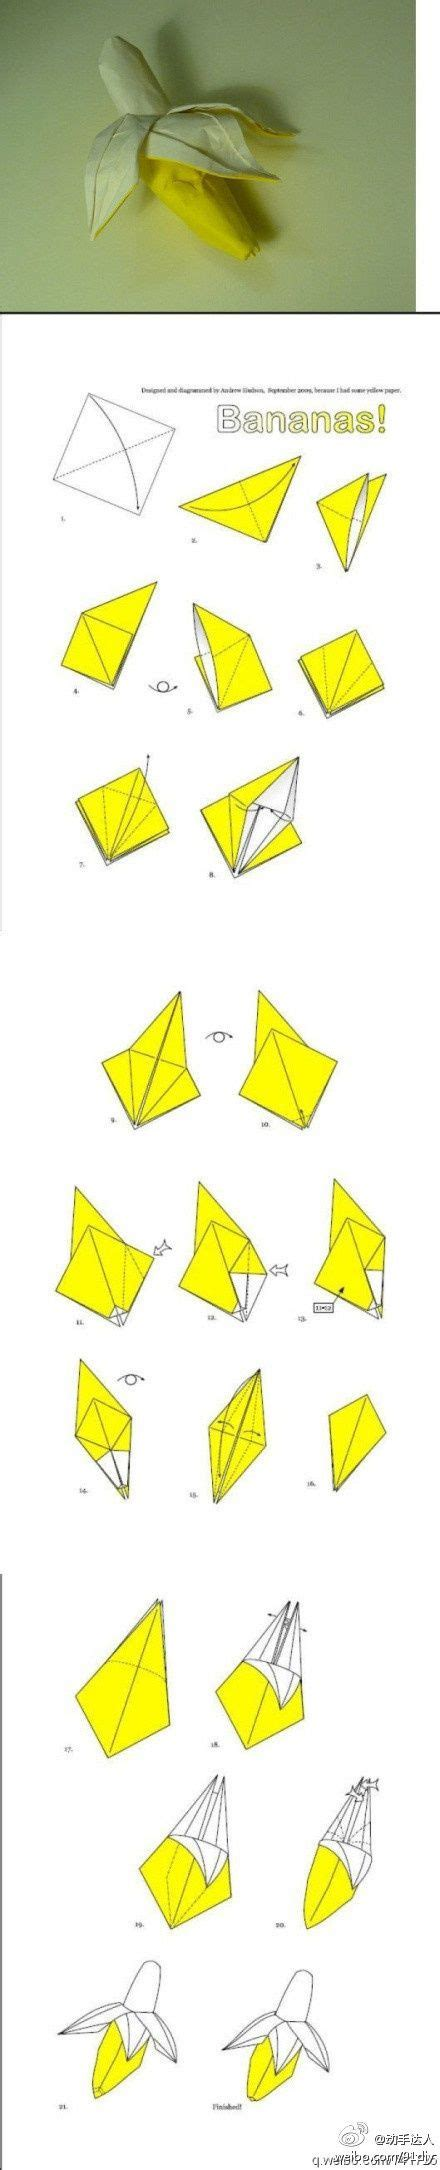 origami banana origami 3d banana and other fruits to be thrown with